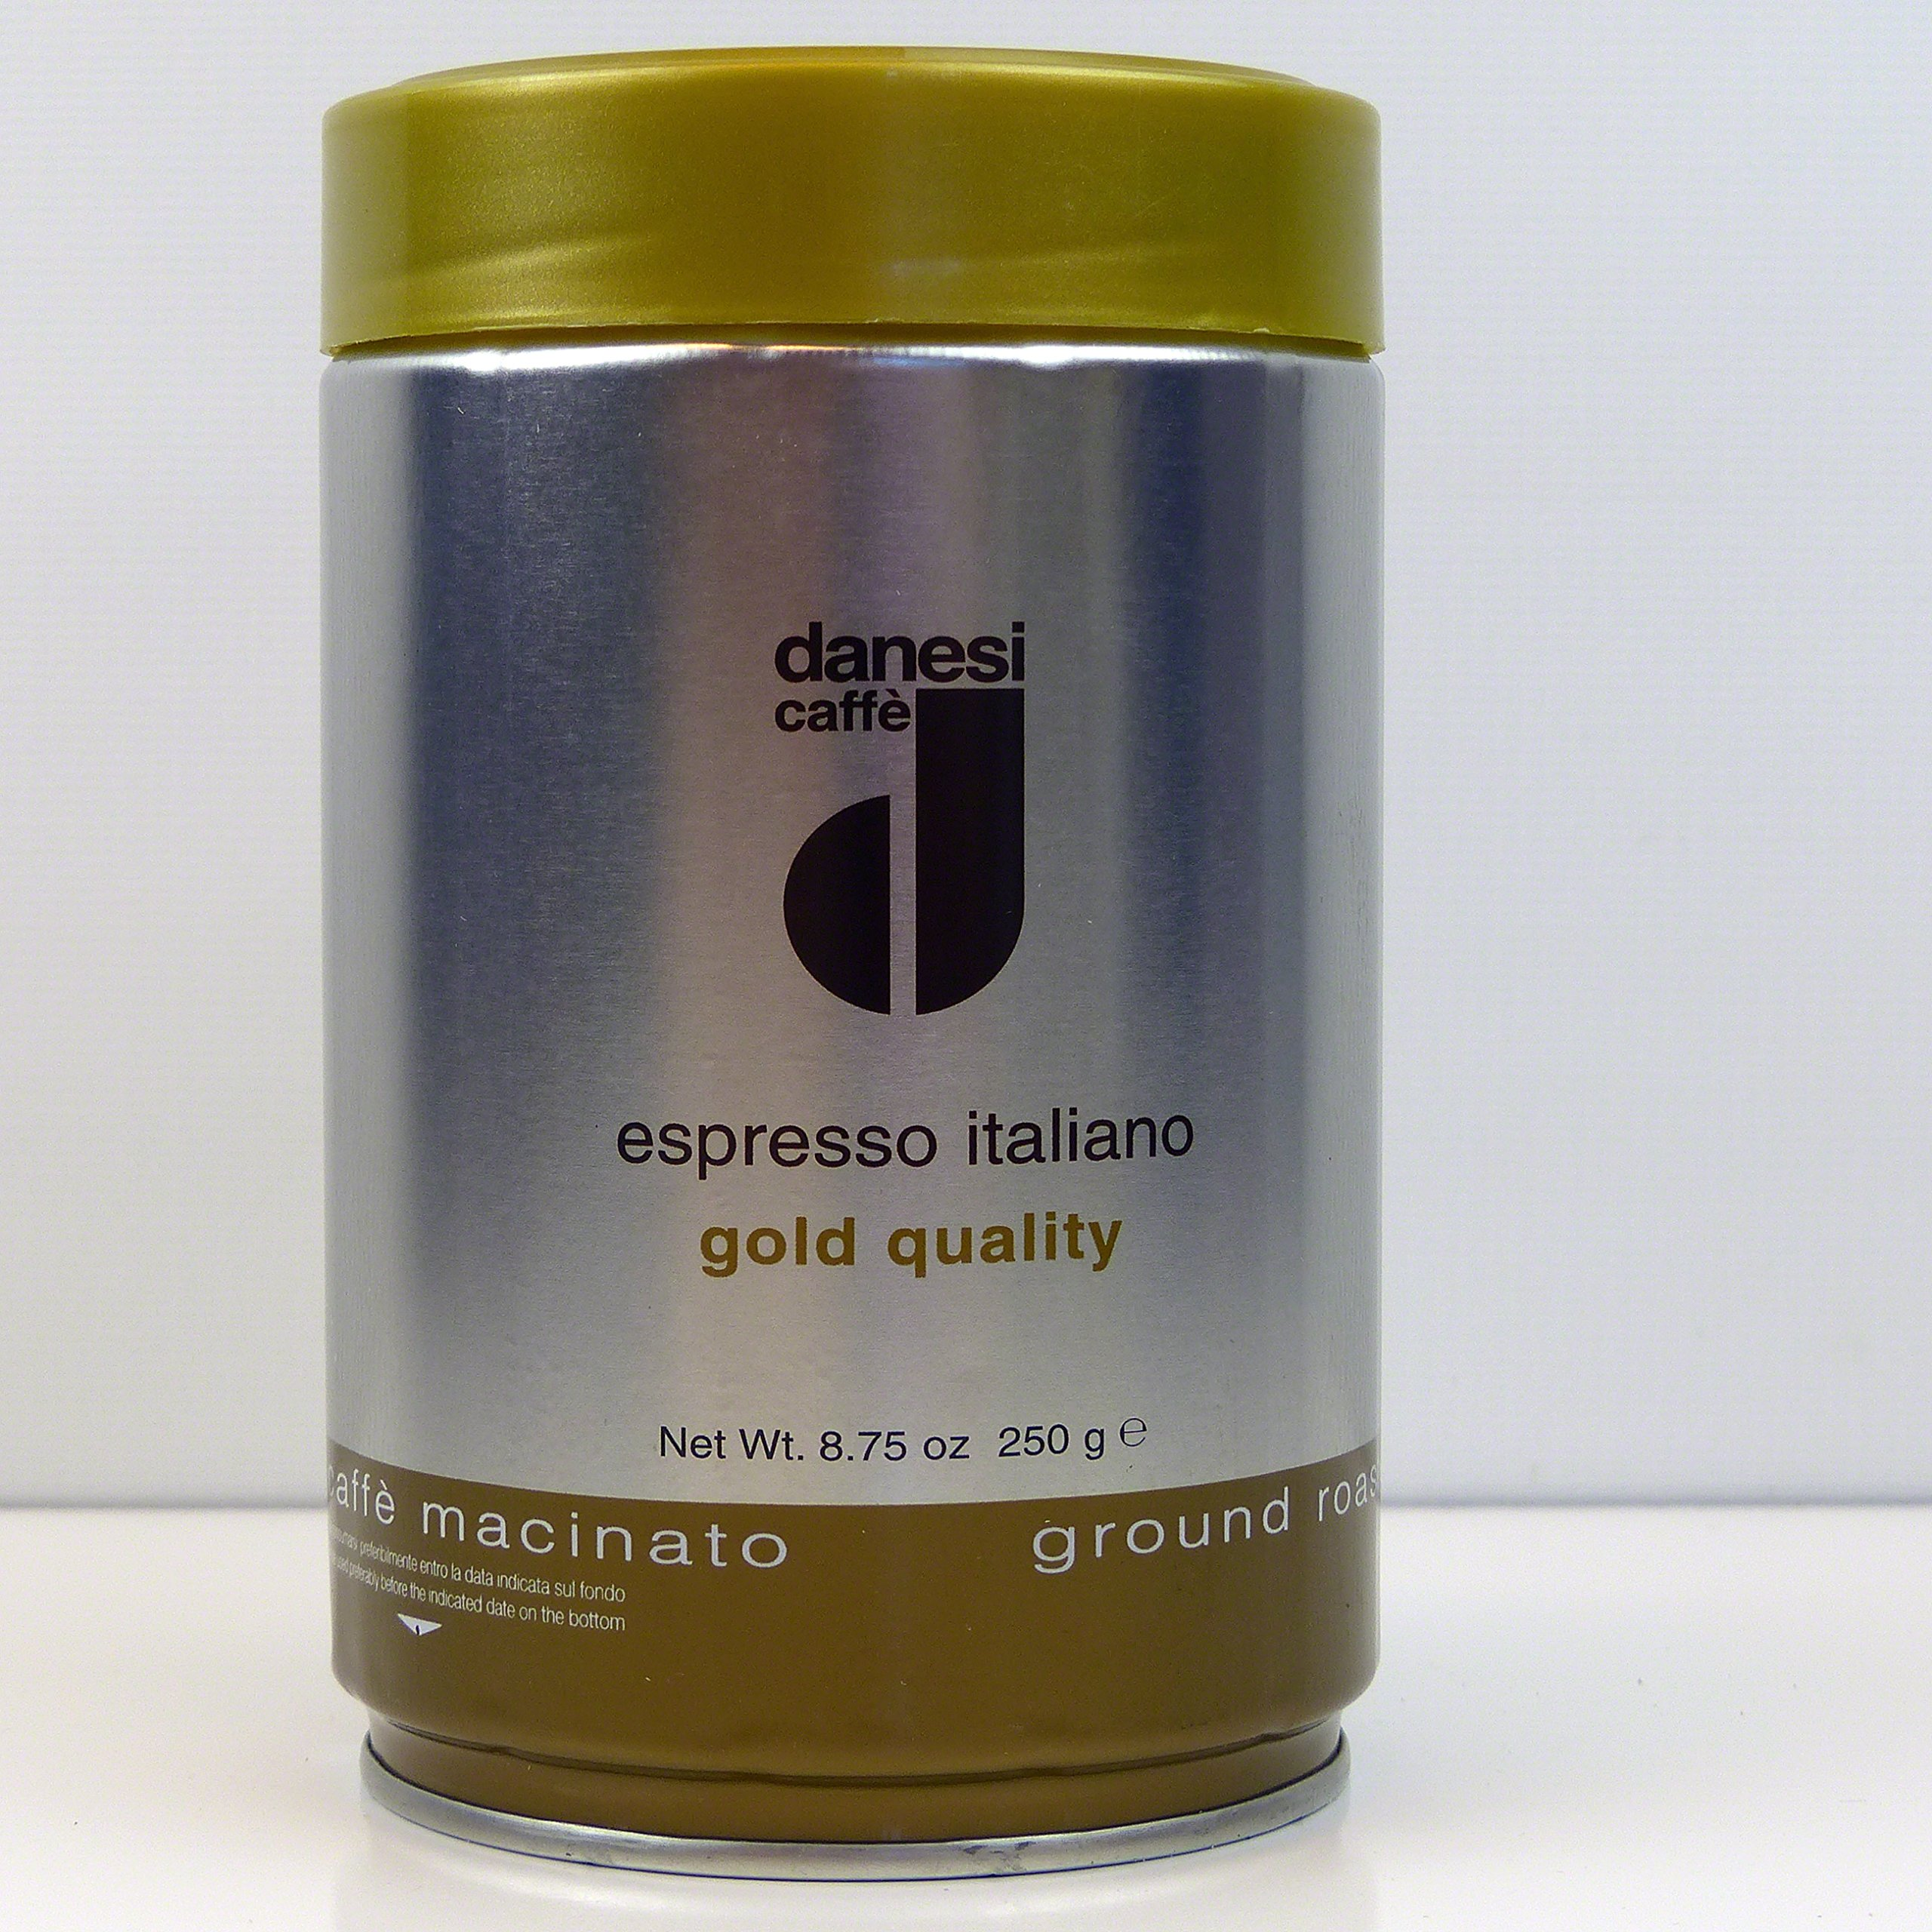 Danesi Cafe Gold Tin Ground Espresso Coffee (12 x 8.8 oz tins)